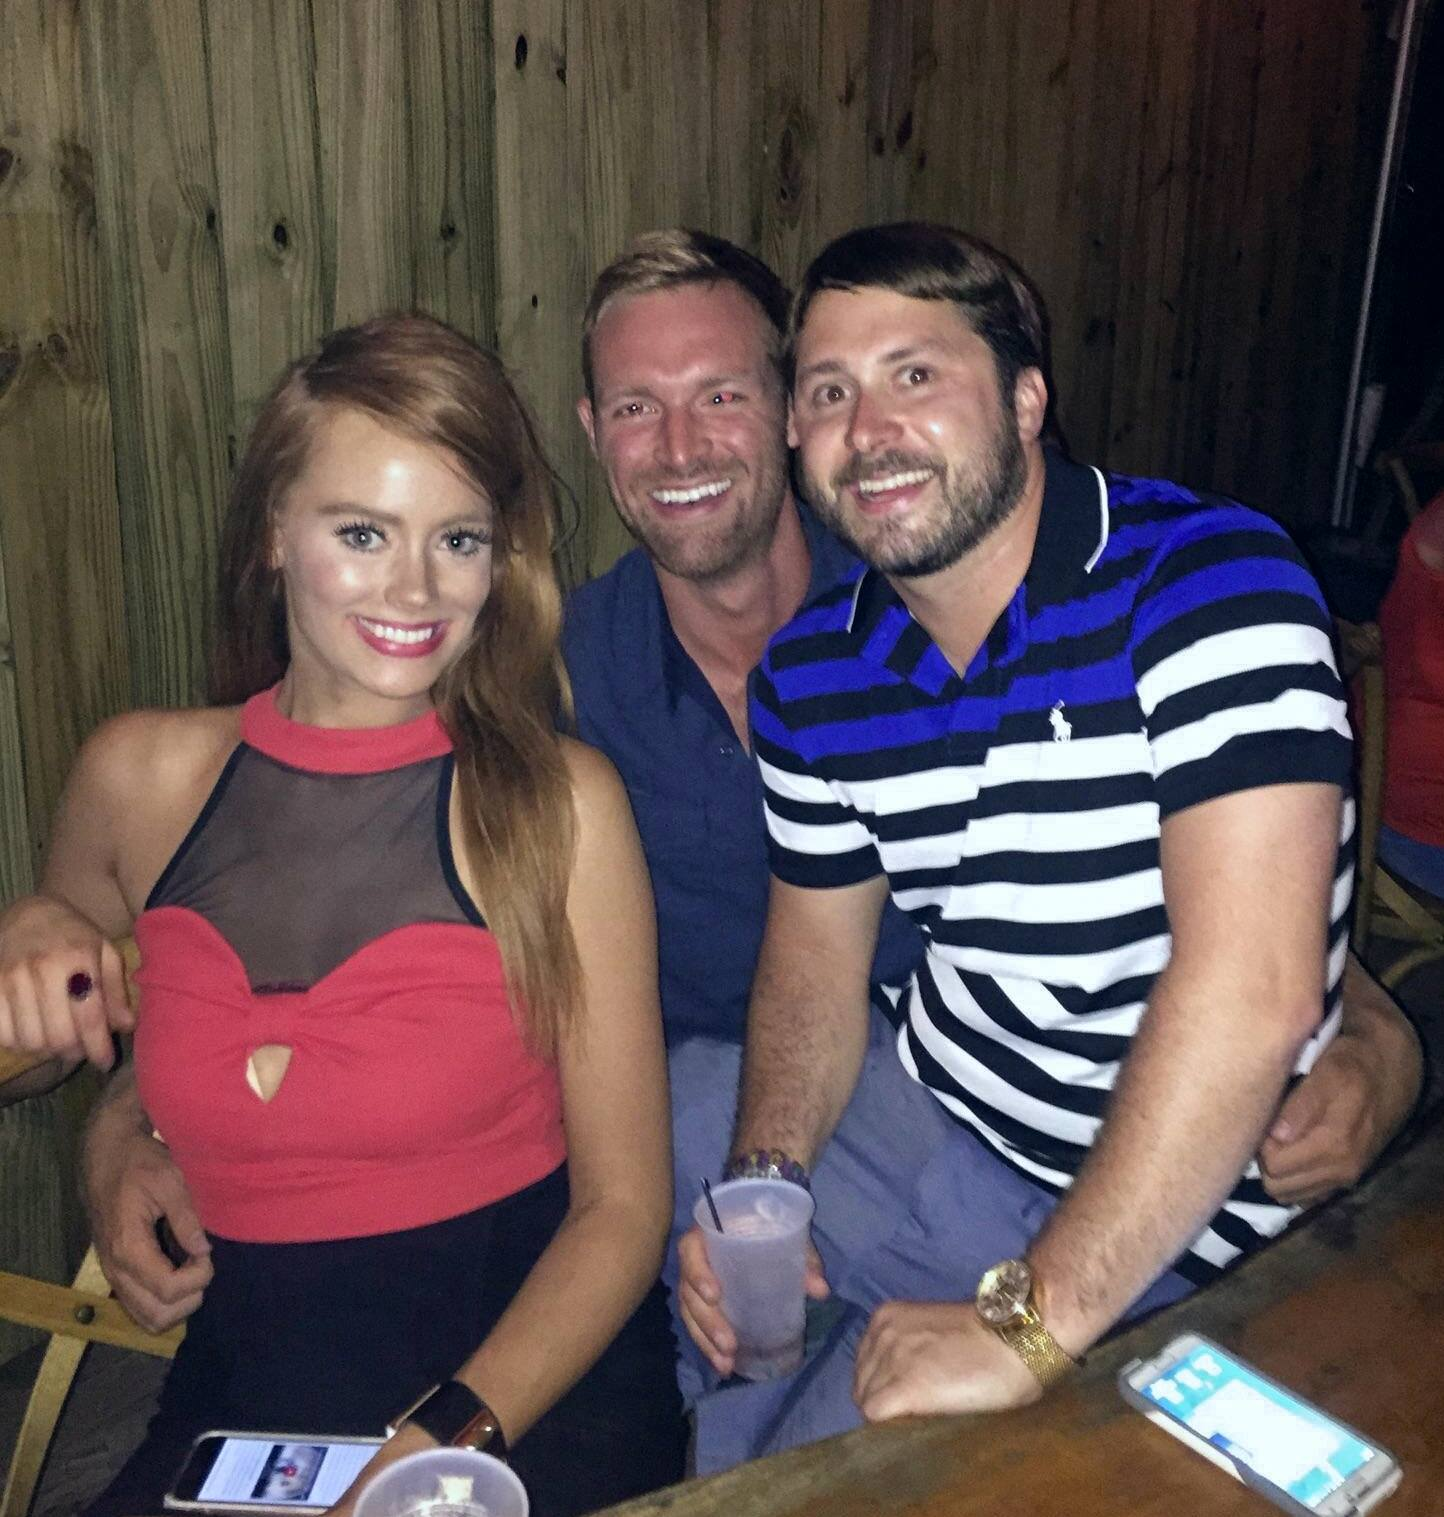 kathryn dennis and aaron jones